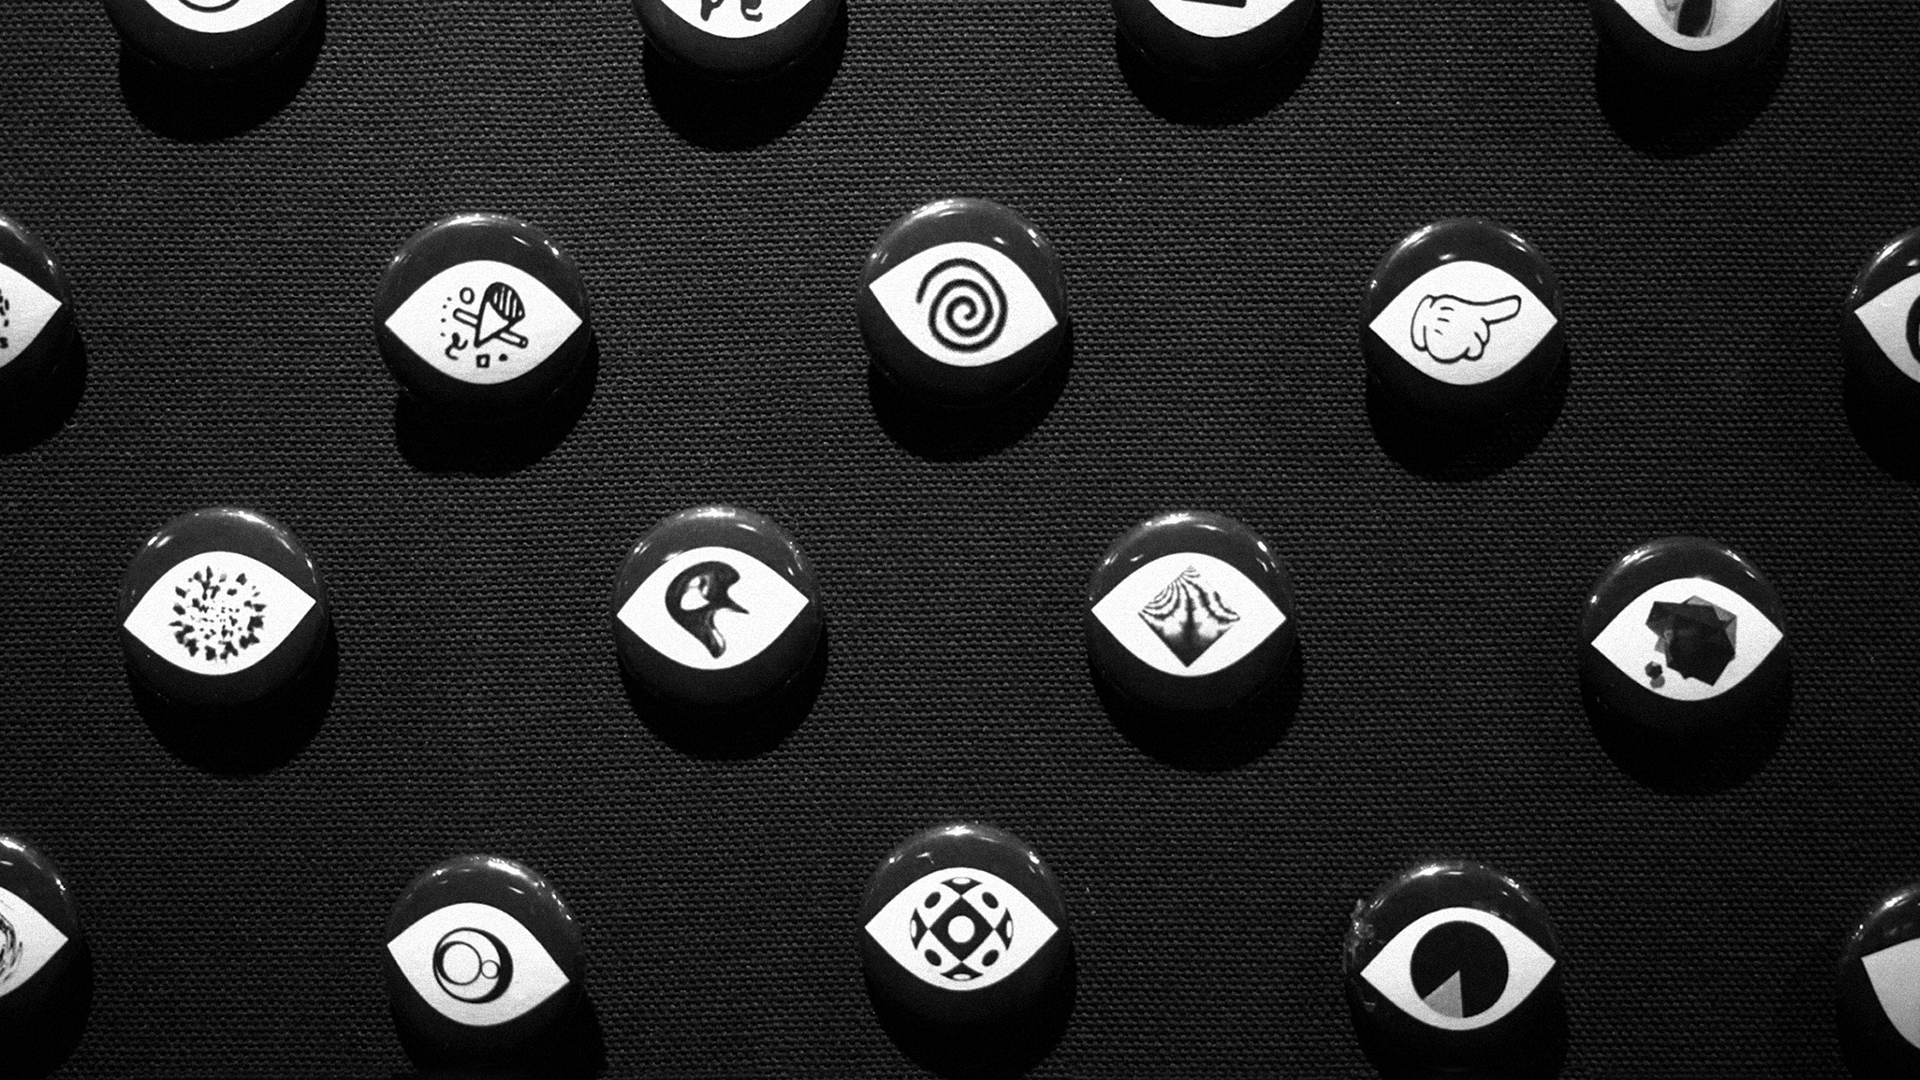 DT_05_Buttons_02